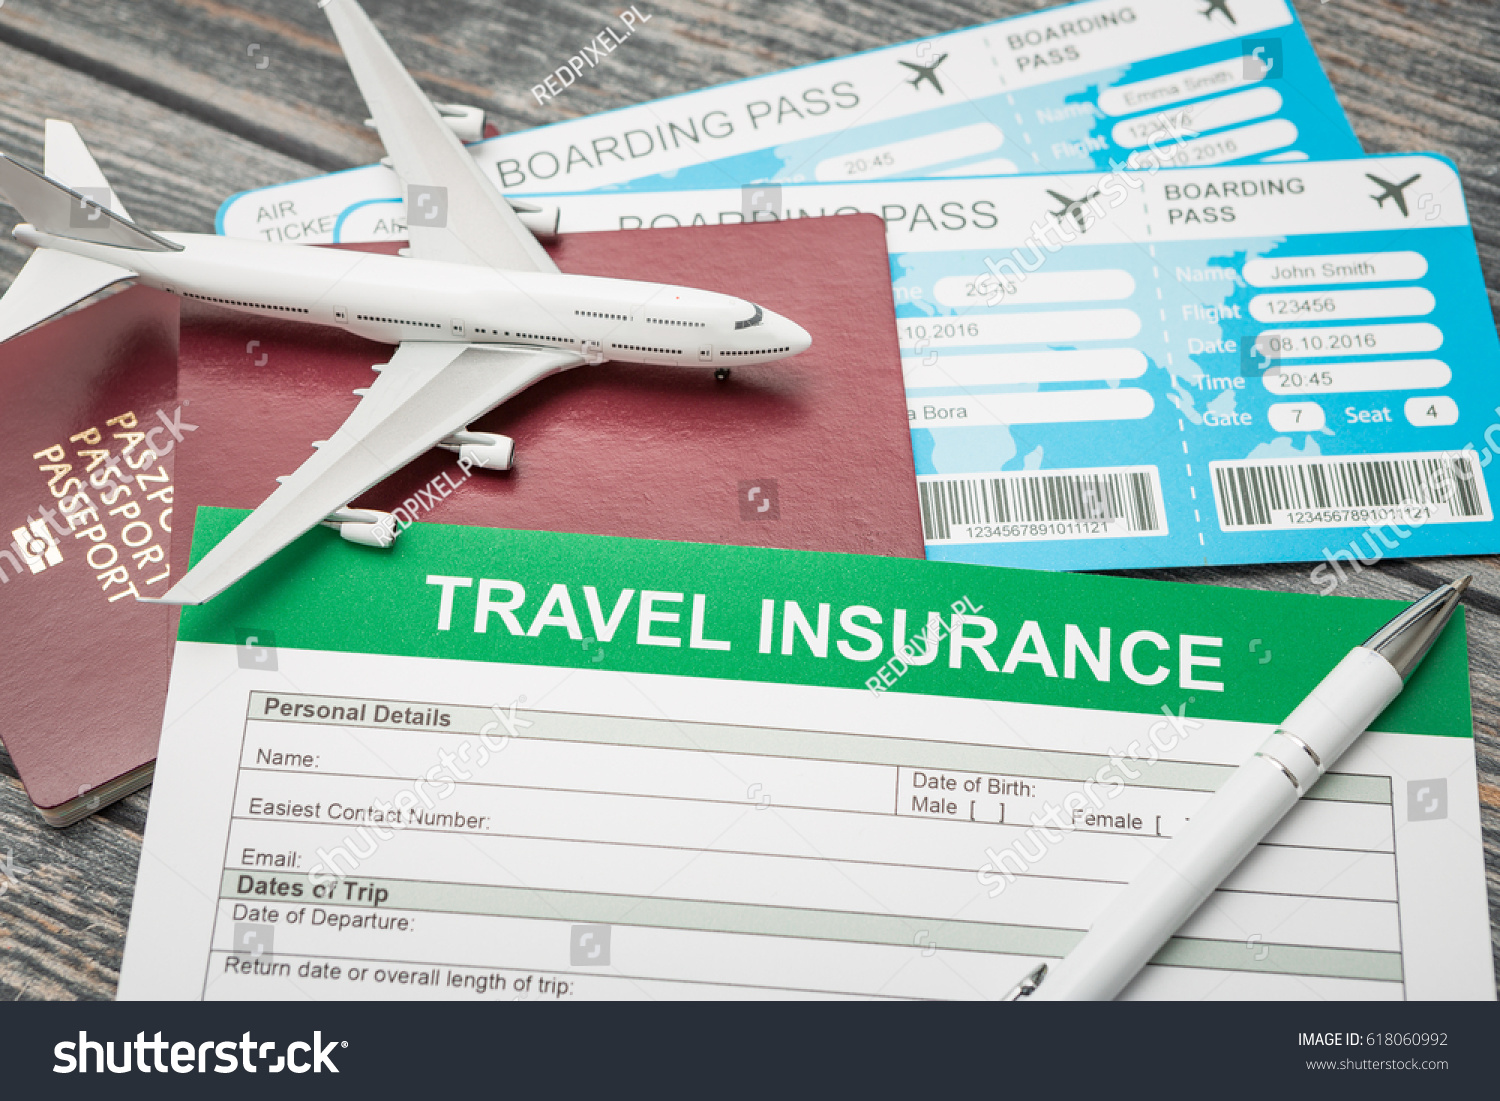 Insurance form located on desk passports stock photo royalty free the insurance form is located on a desk with passports and air tickets small plane thecheapjerseys Choice Image